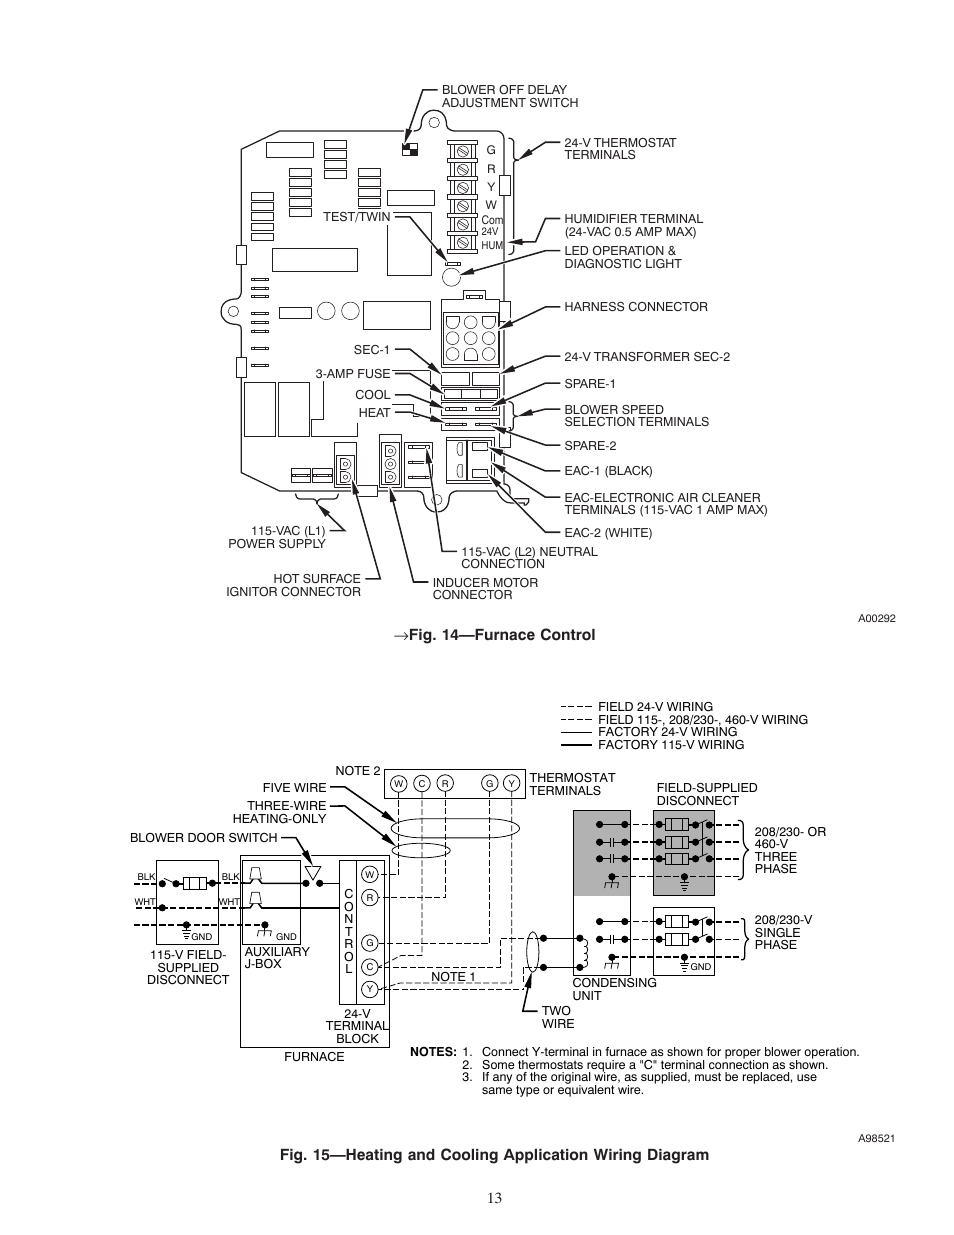 Coleman Eb17b Furnace Wiring Diagram further Electric Furnace Wiring Diagram moreover Electric Furnace Wiring Diagram Sequencer as well Blower Motor Wire Diagram besides Zone Valve Wiring. on nortron electric furnace wiring diagram